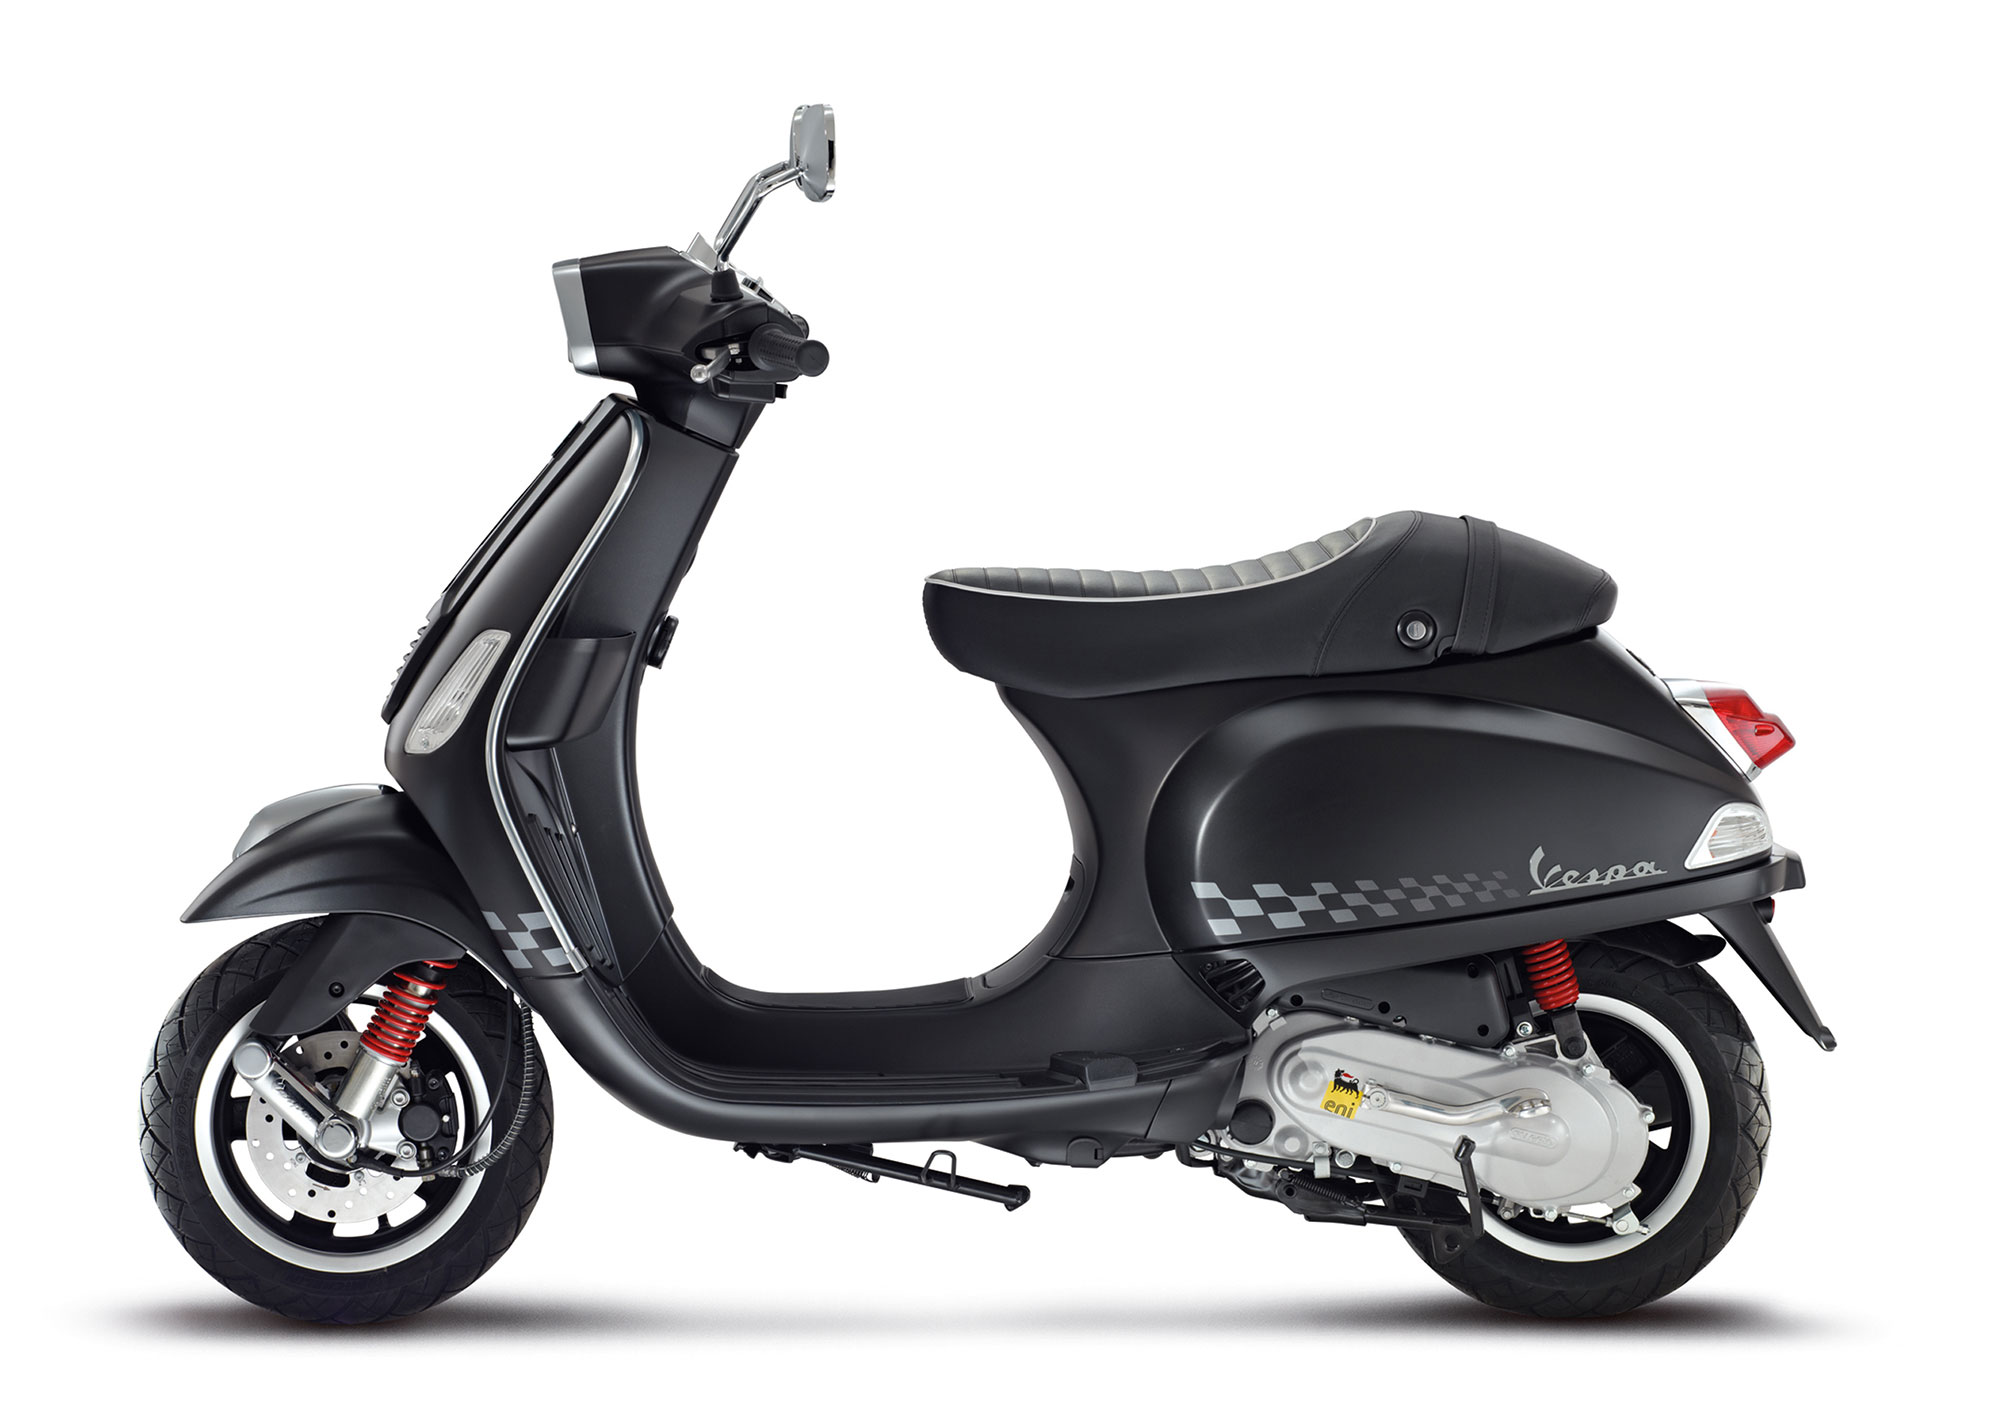 vespa s 50 4v sport se specs 2013 2014 autoevolution. Black Bedroom Furniture Sets. Home Design Ideas